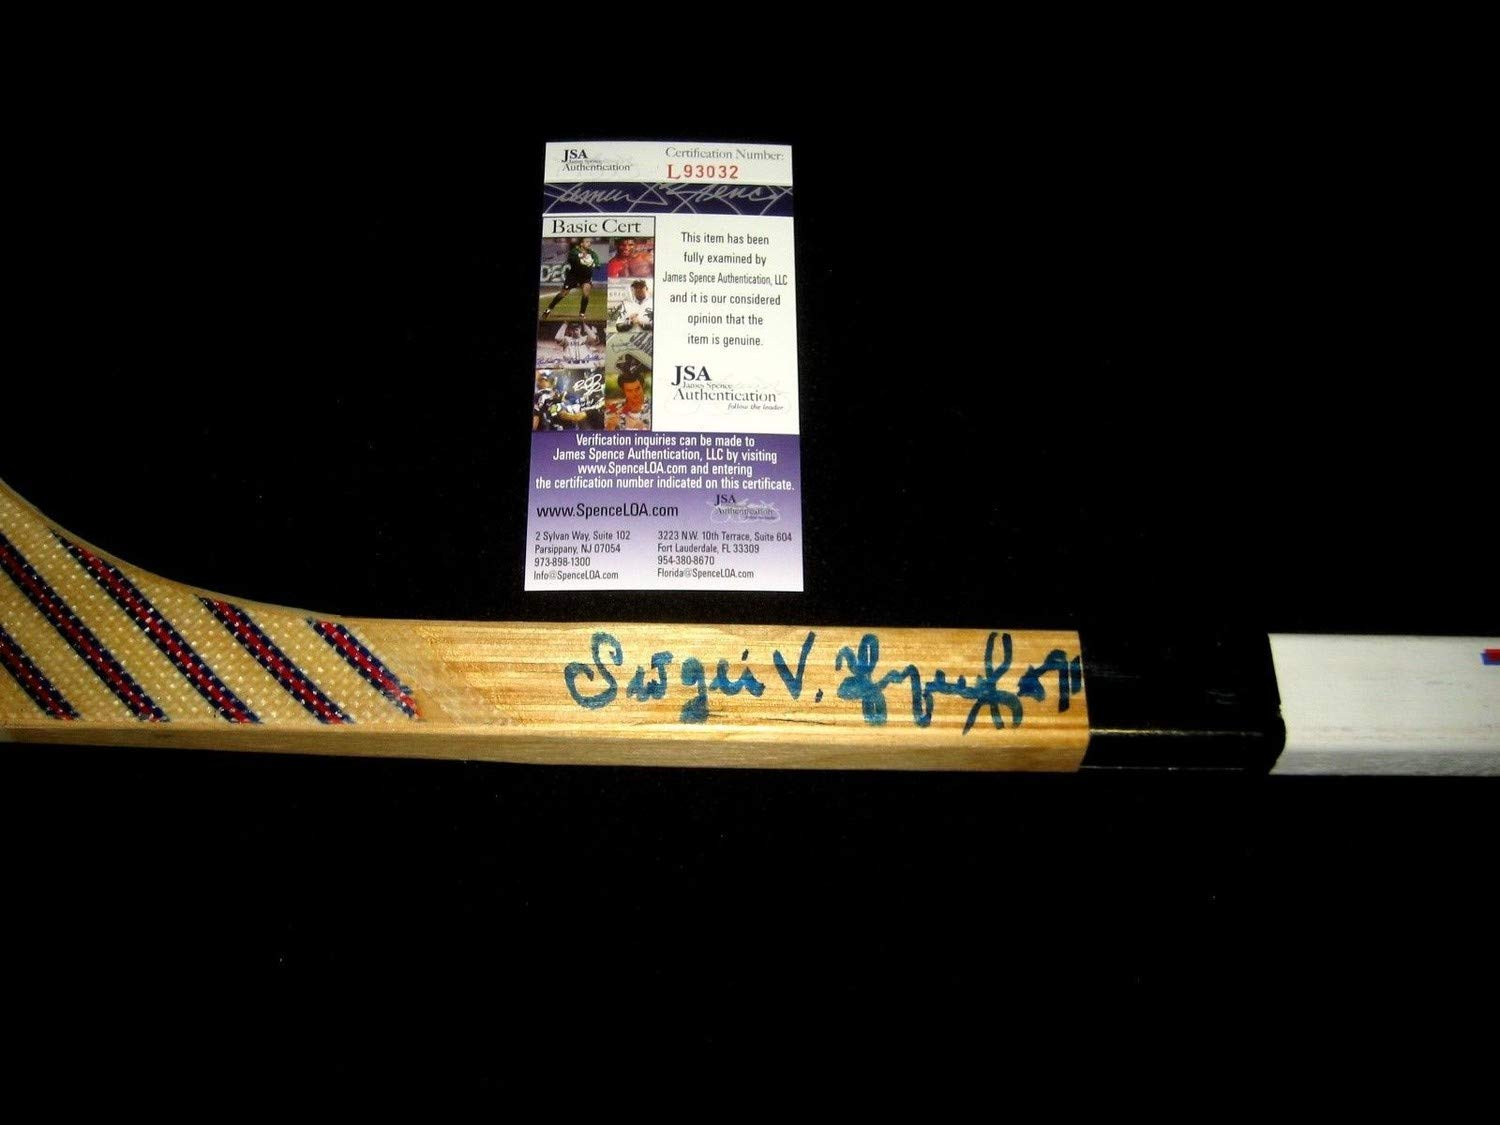 Sergei Fedorov Autographed Signed Full Name Detroit Red Wings Hockey Stick Very JSA Authentic